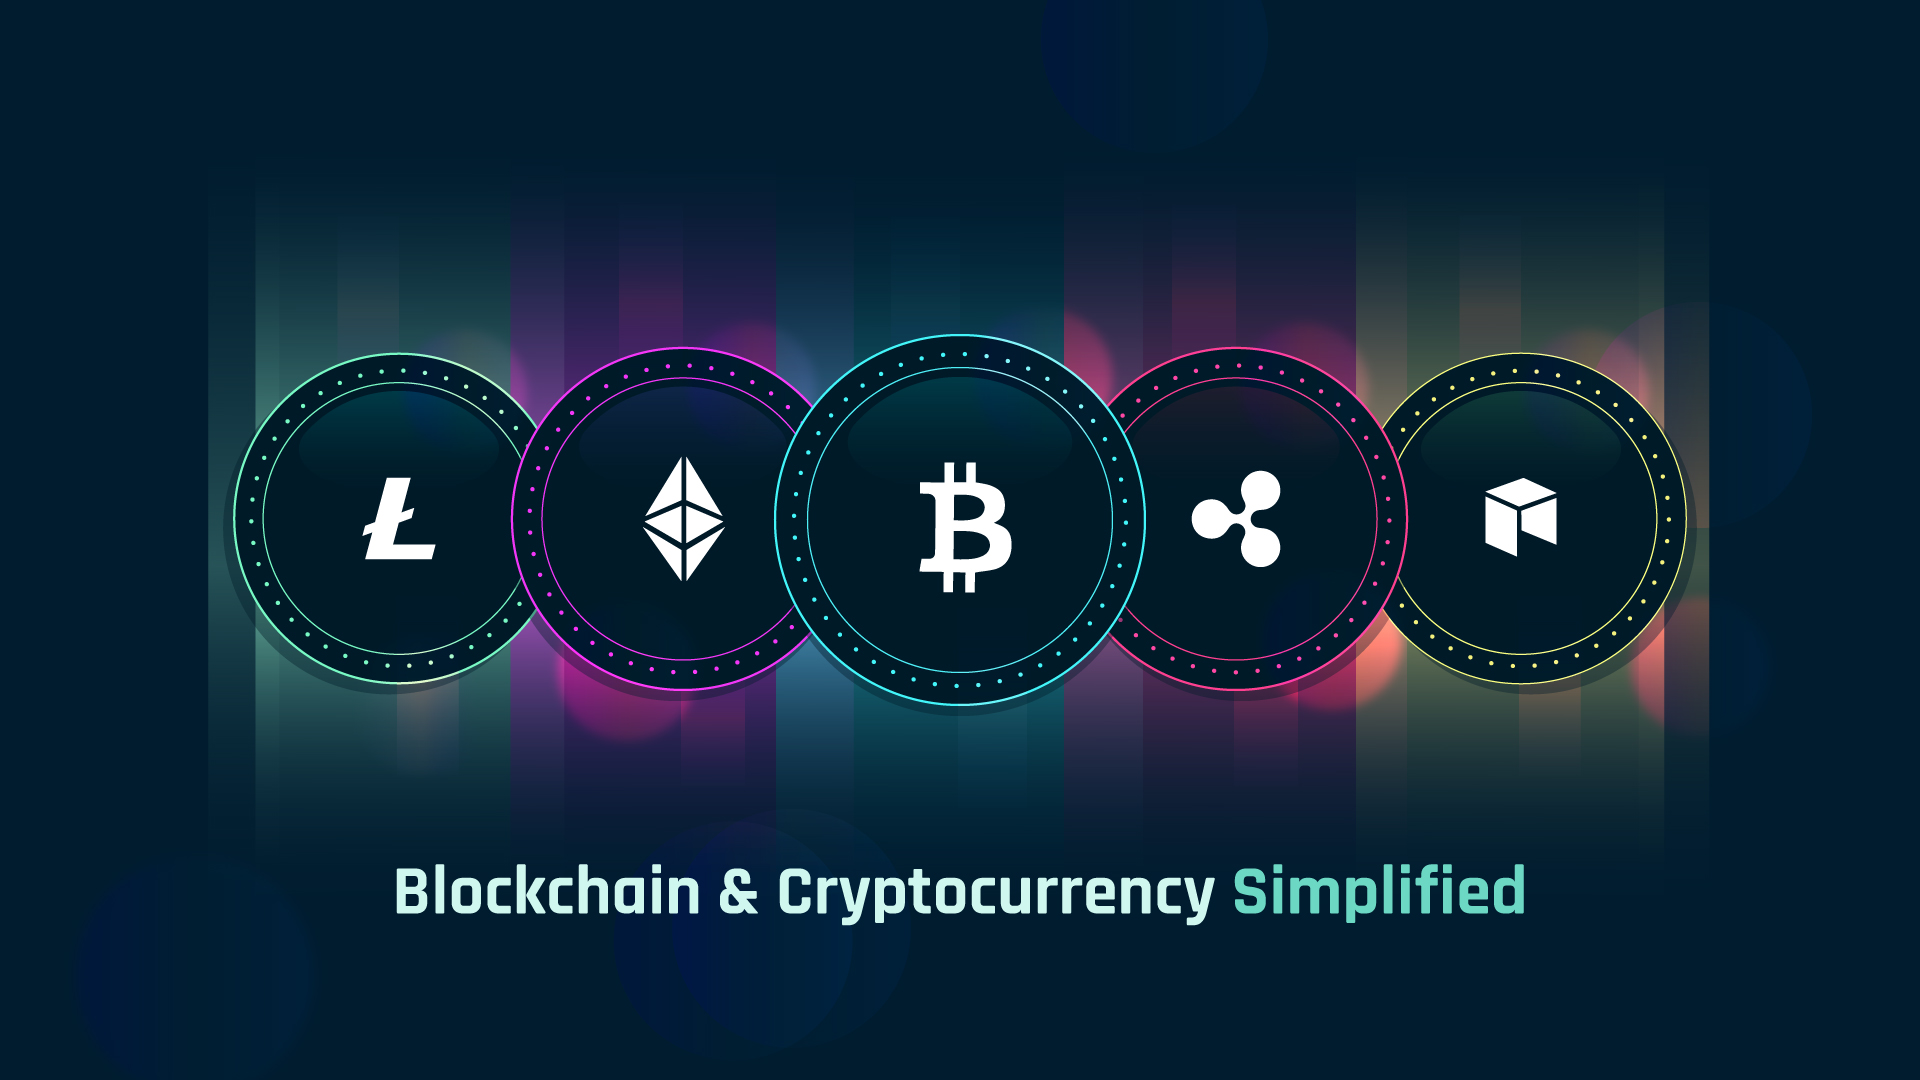 simplify crypto currency and blockchain using explainer videos-wowmakers